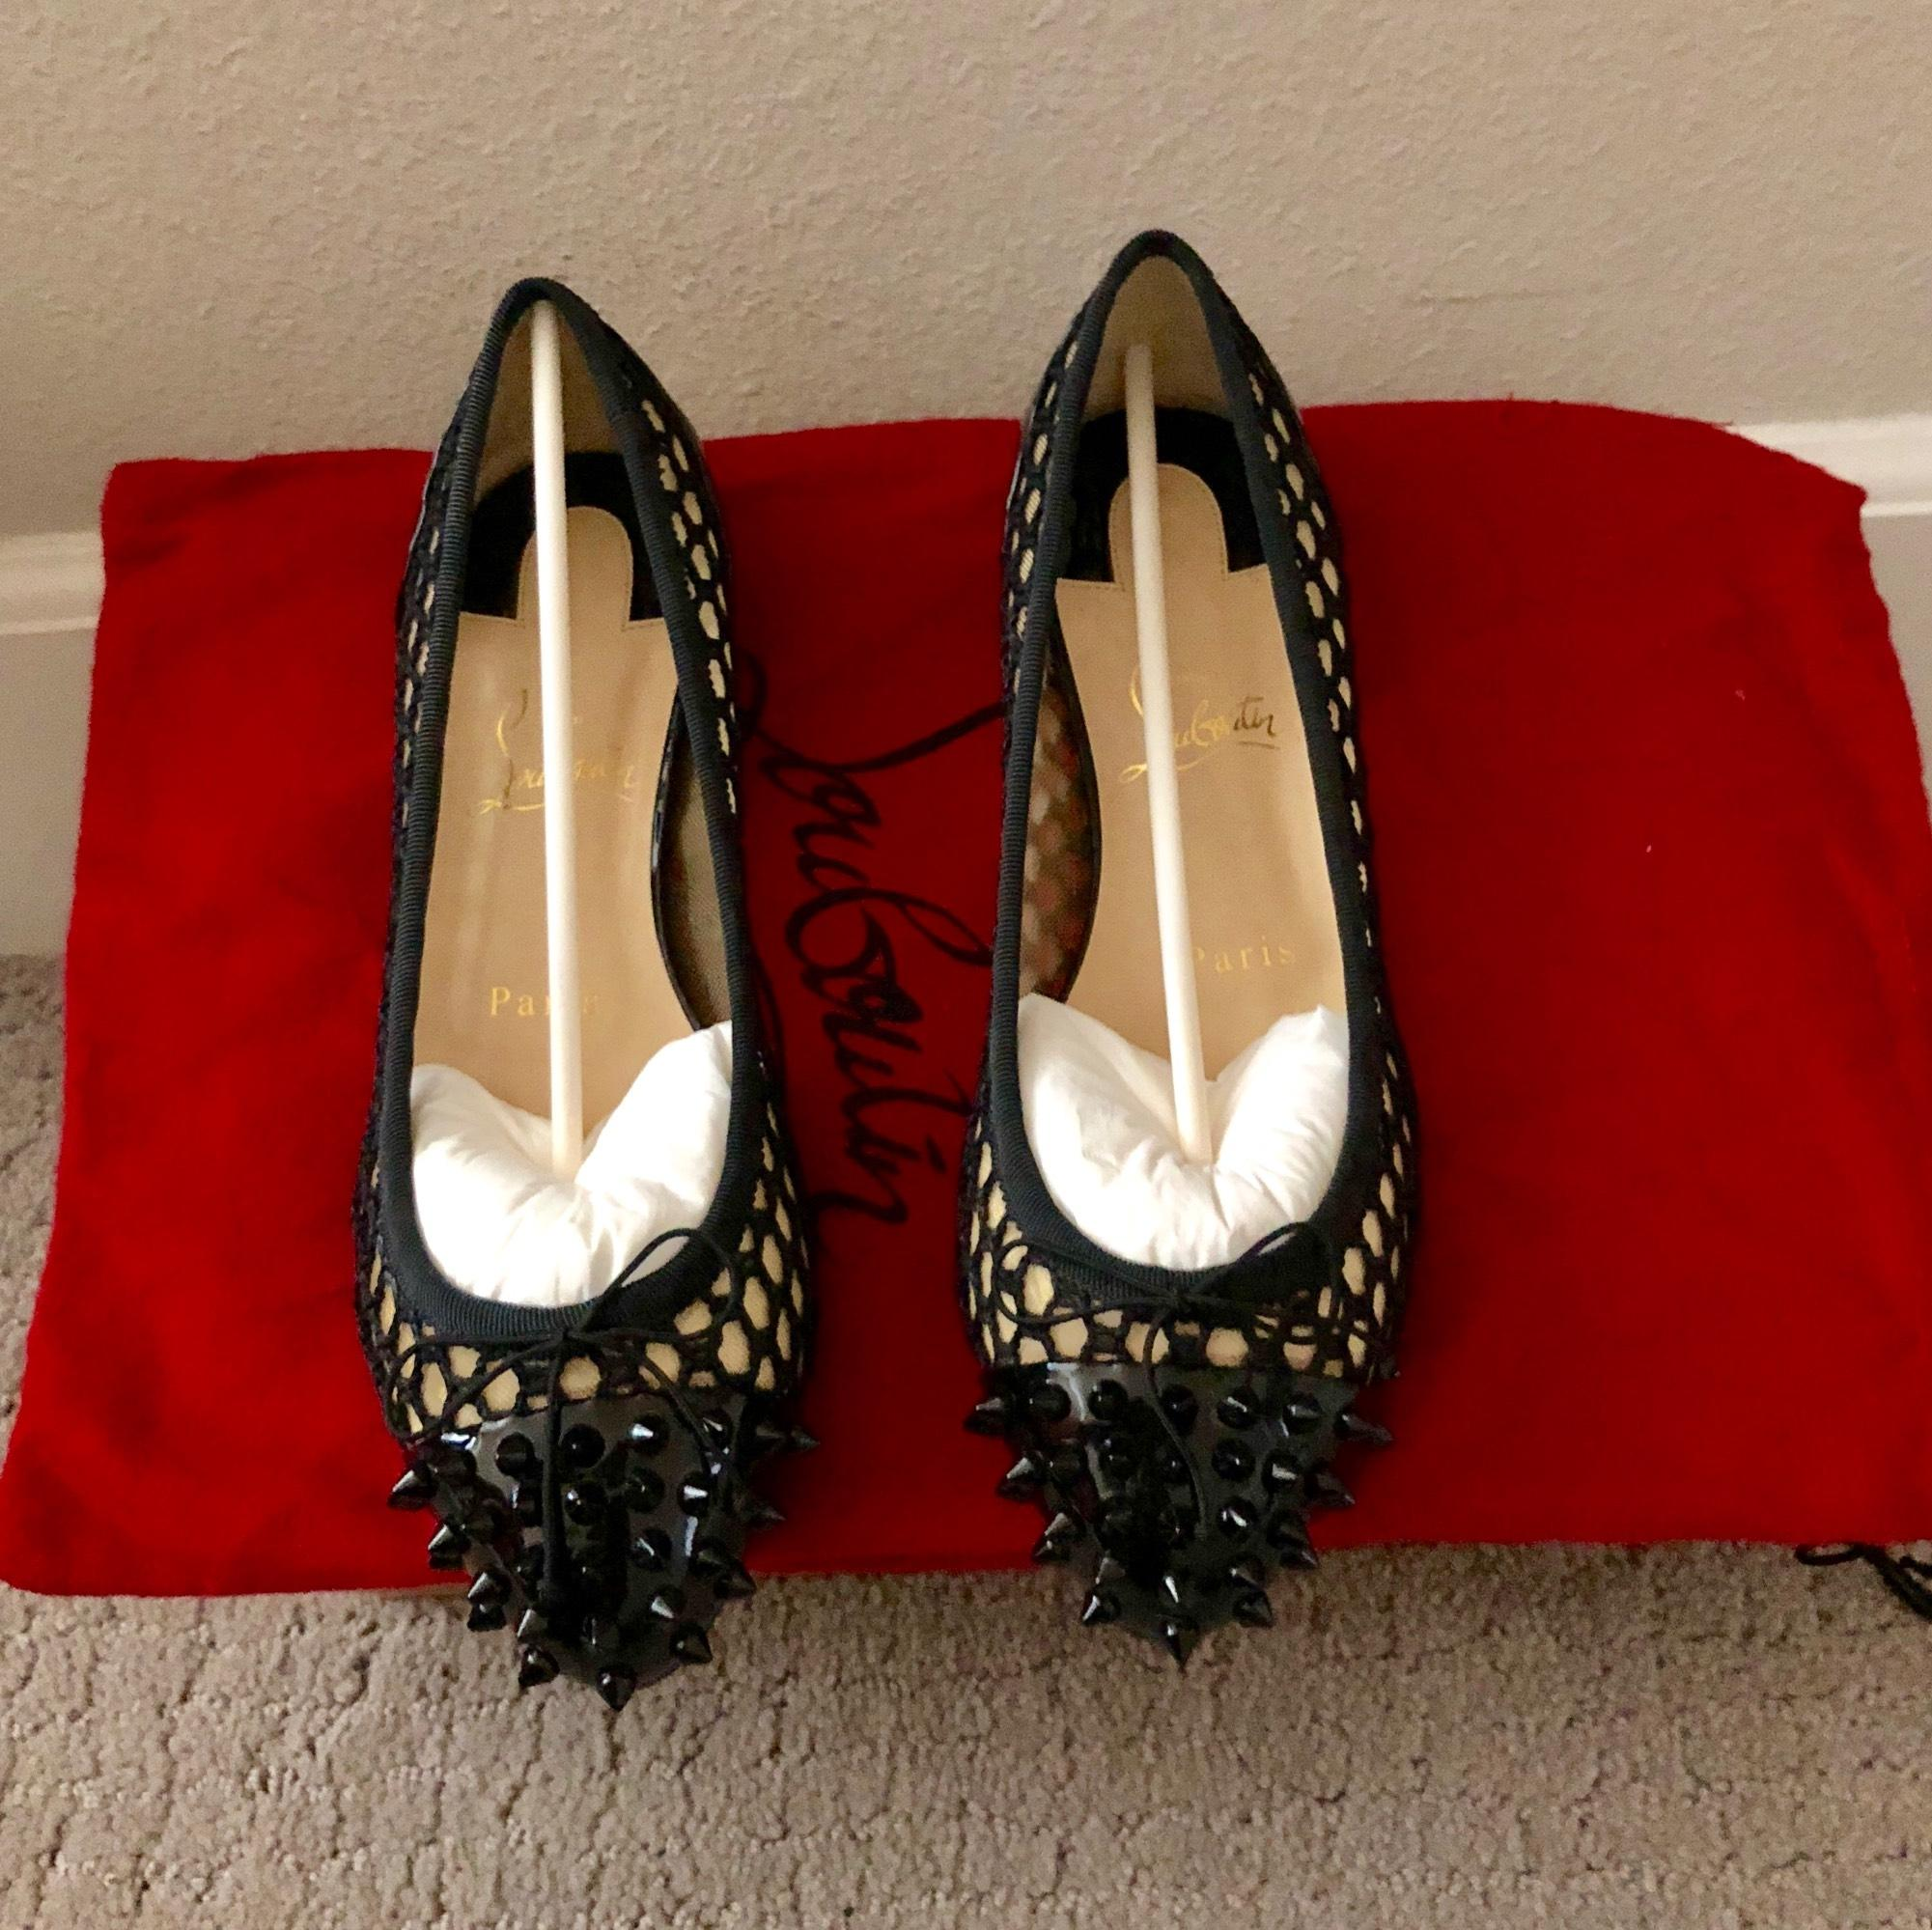 Christian Louboutin Black Mix Patent Leather and Mesh Spiked Flats Size US 6.5 Regular (M, B)